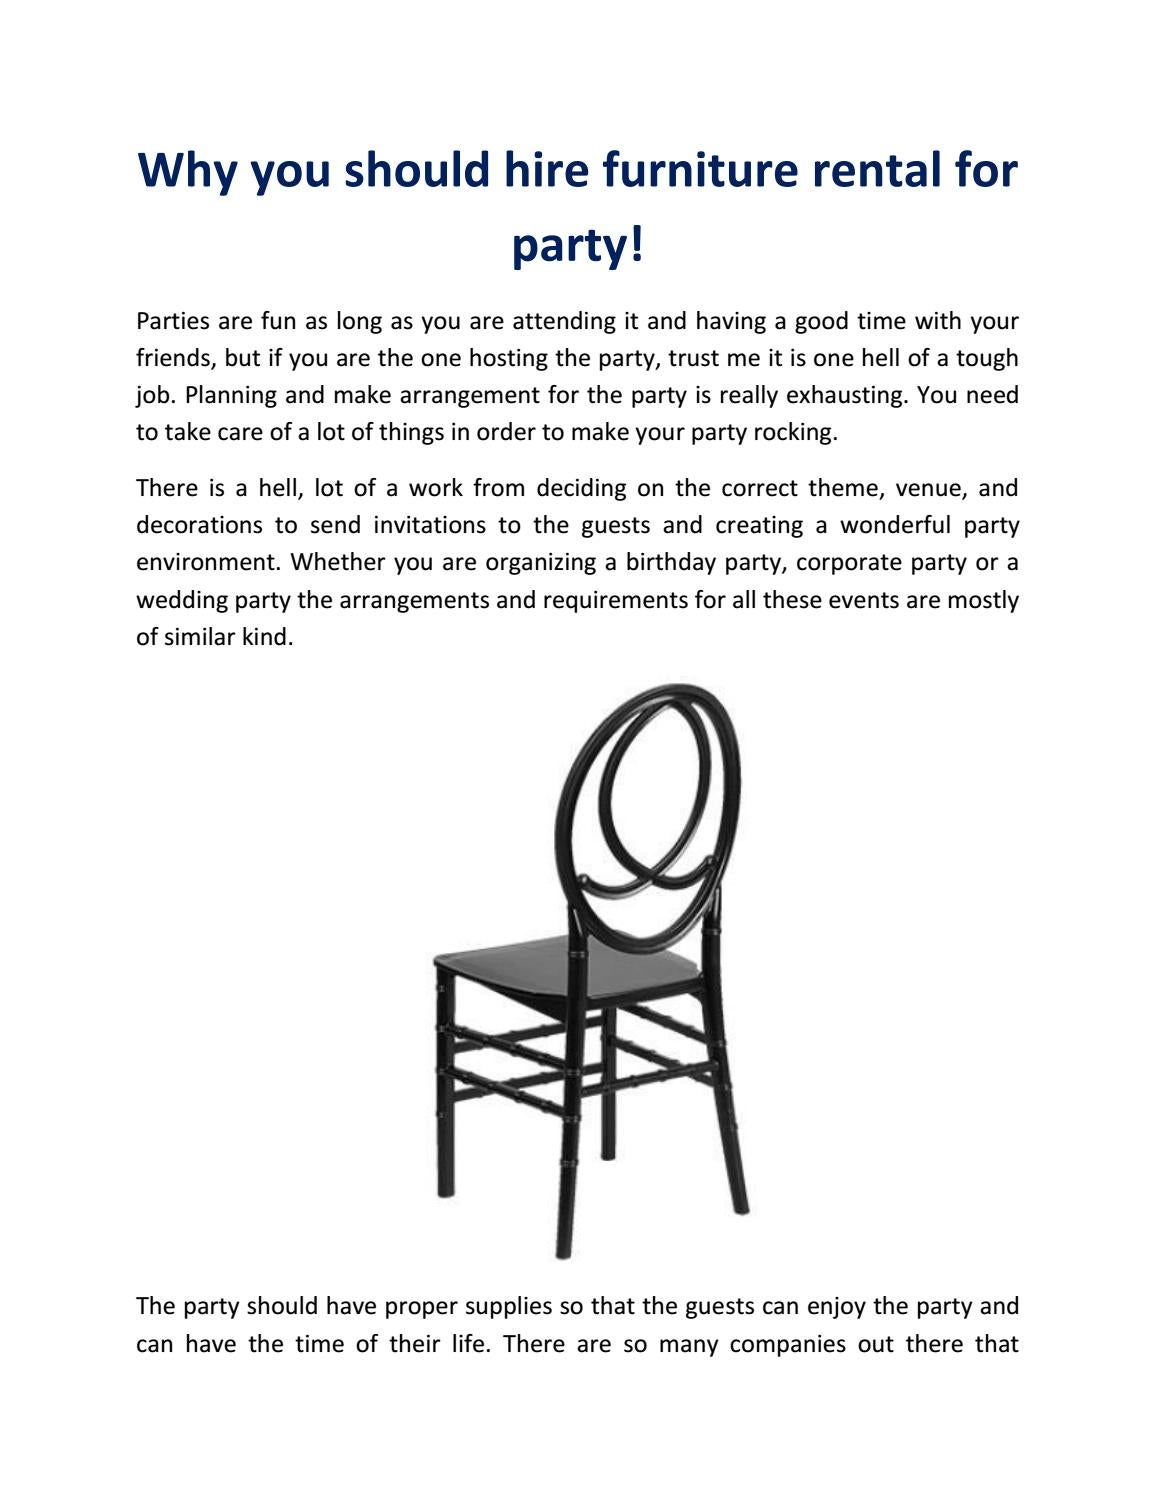 Why you should hire furniture rental for party by Expo Events and